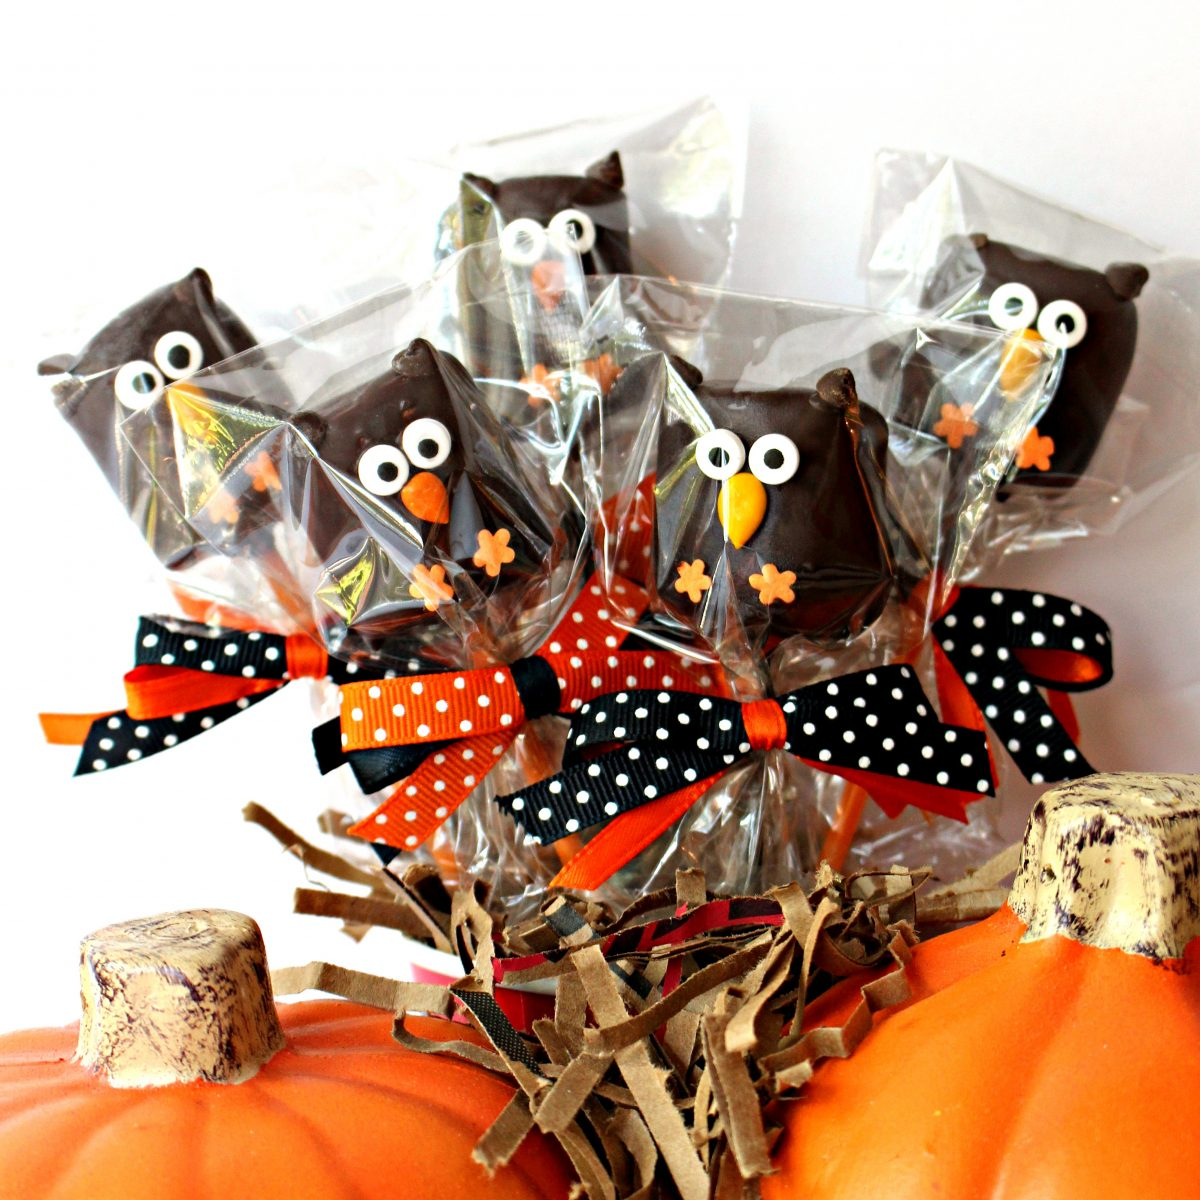 five owl marshmallow pops wrapped individually in cellophane bags , tied with polka dot ribbons in black and orange.